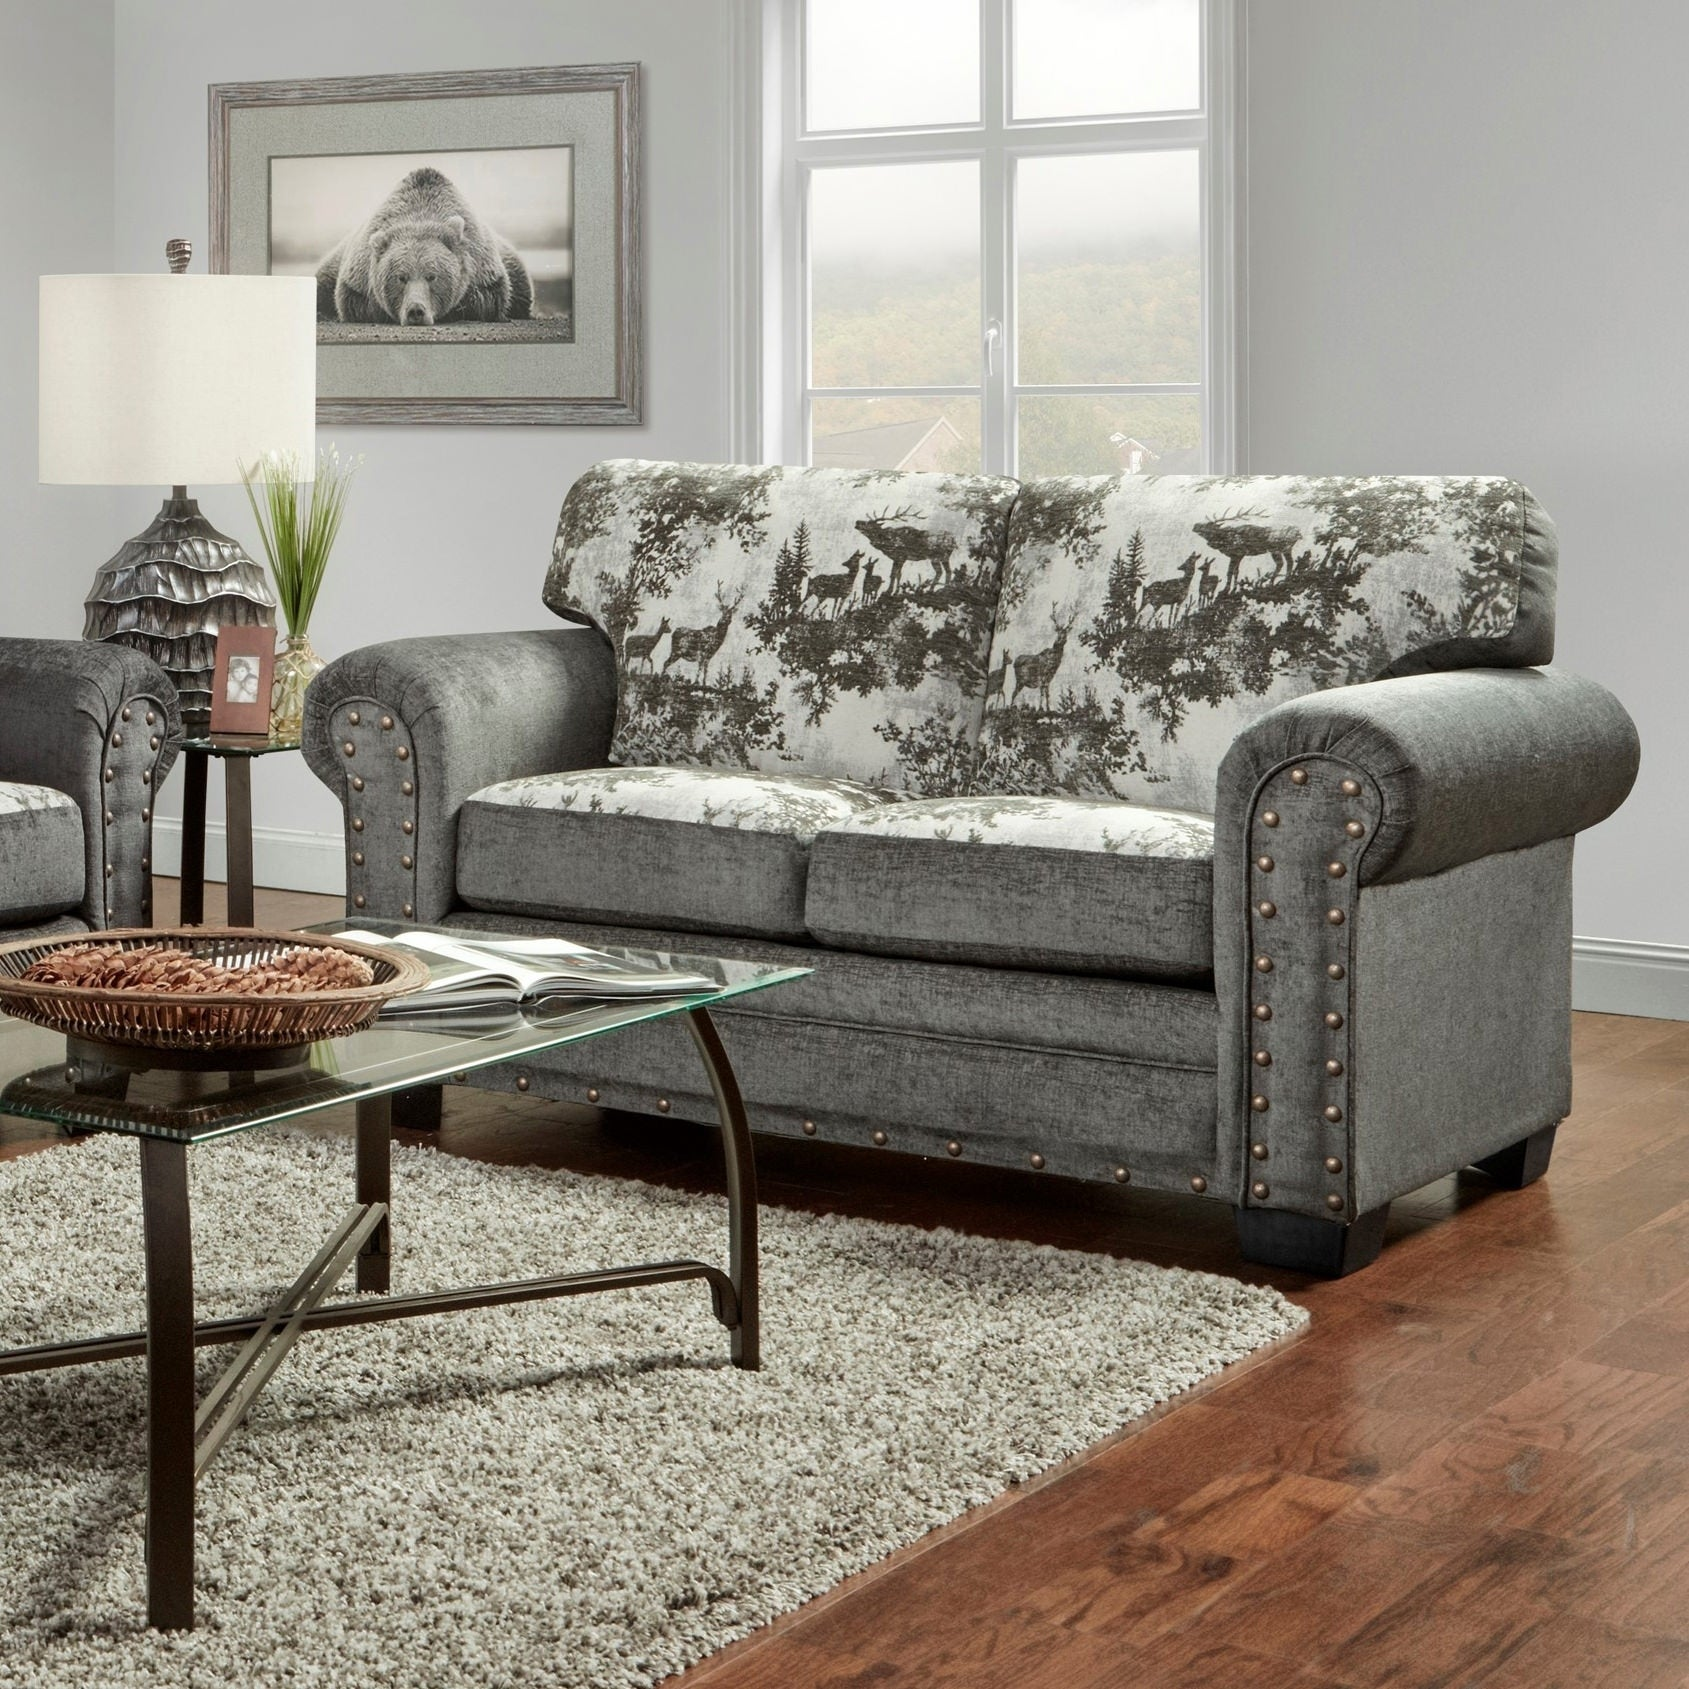 American Furniture Classics Model B8502 Elk River Lodge Loveseat With Nail Head Accents